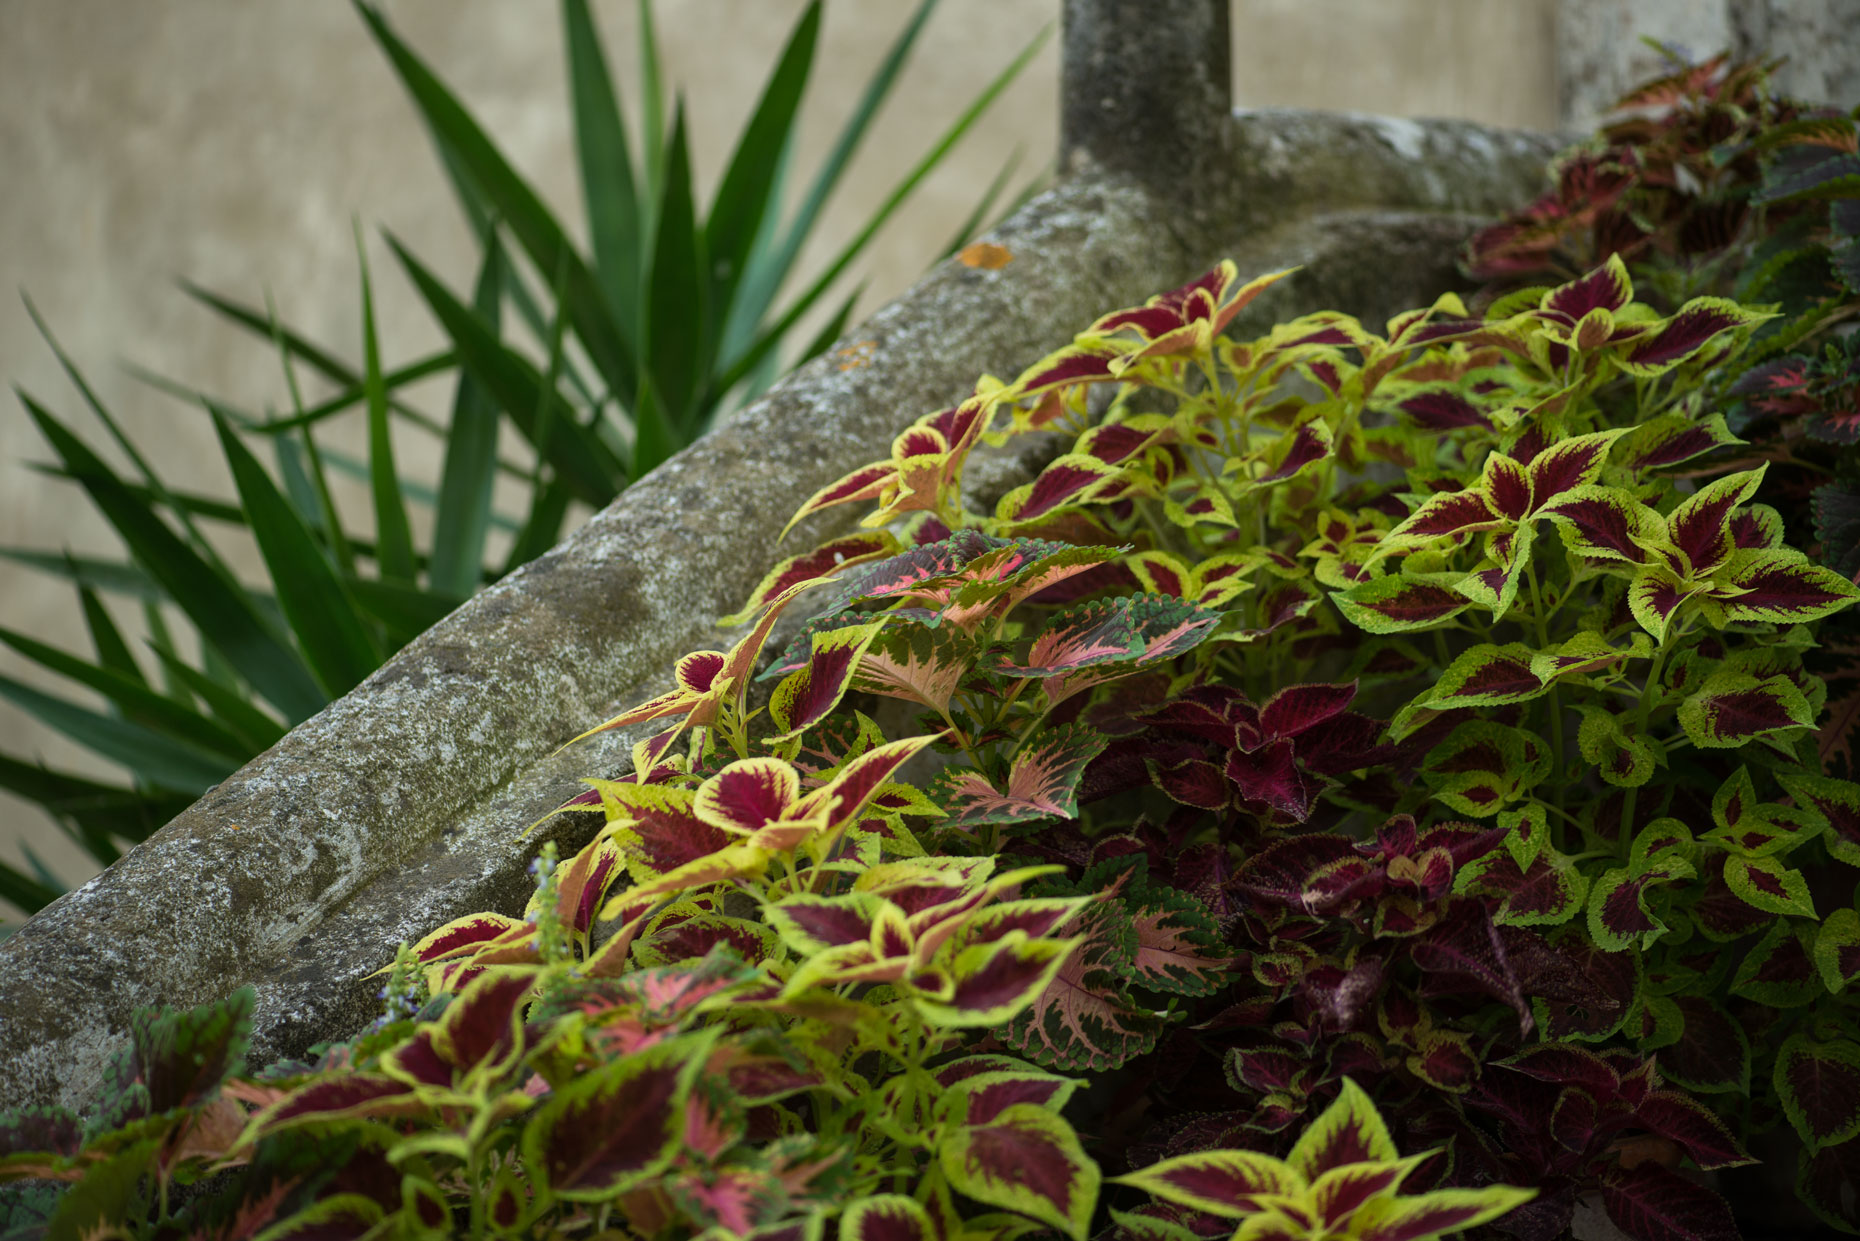 Nature and flowers in a coleus-filled stairway